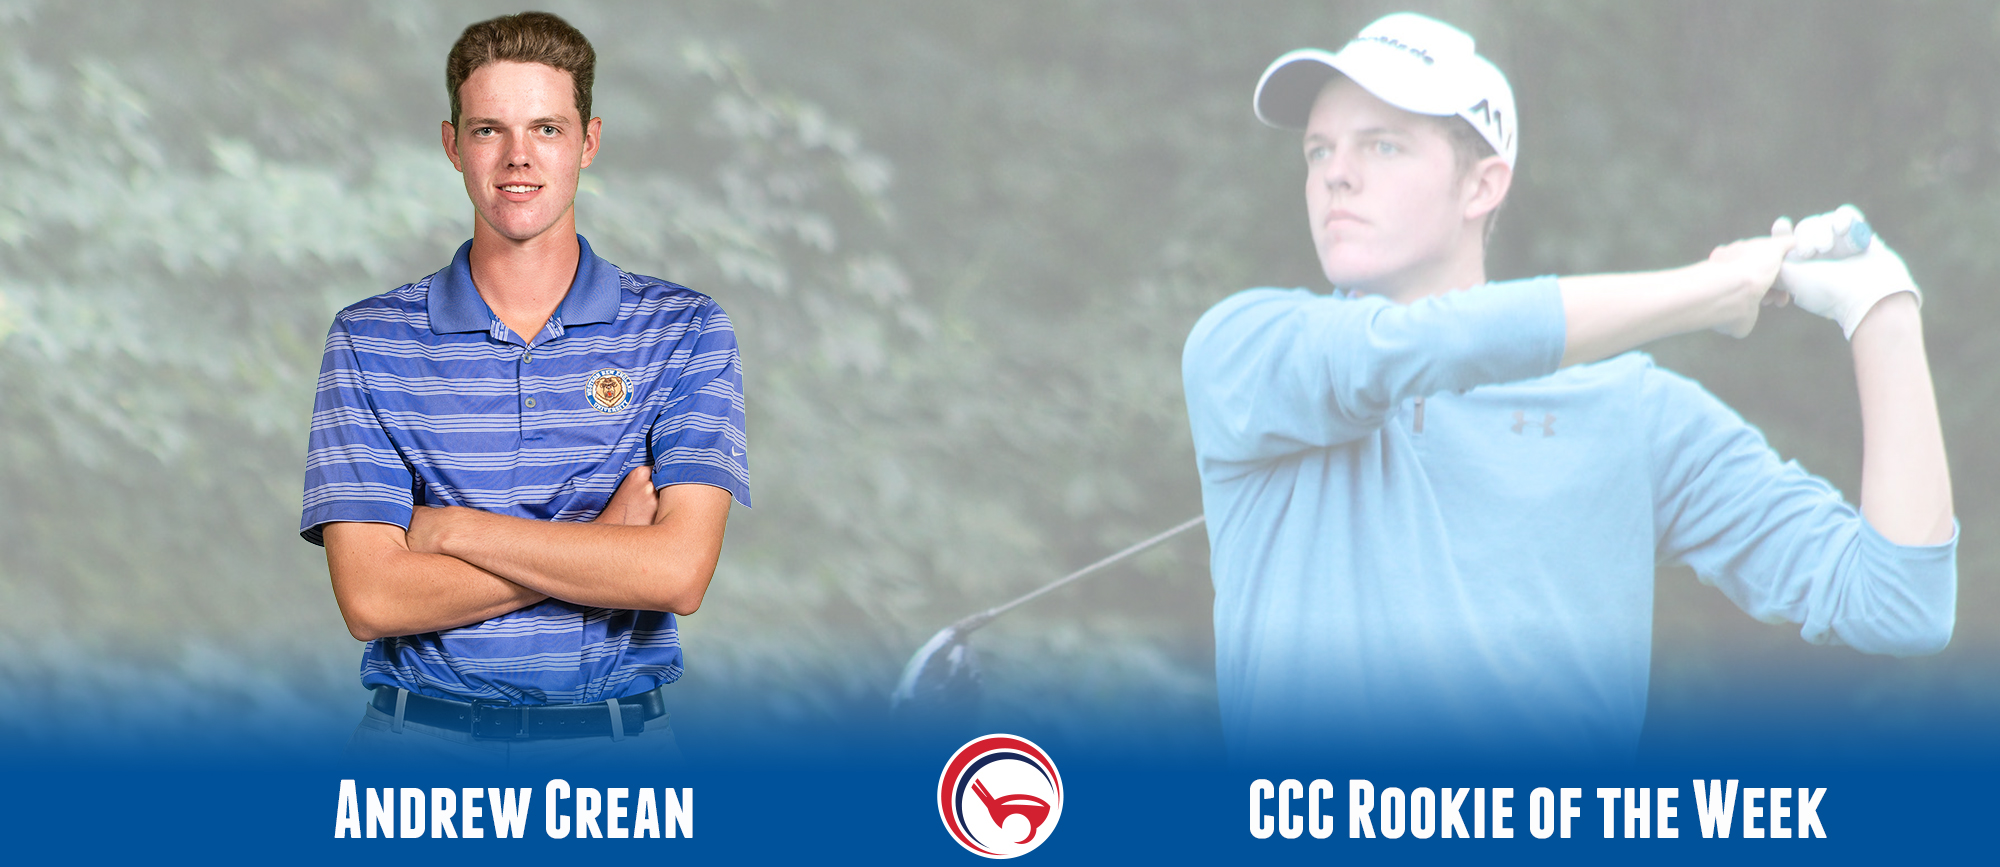 Andrew Crean Earns Second CCC Rookie of the Week Award